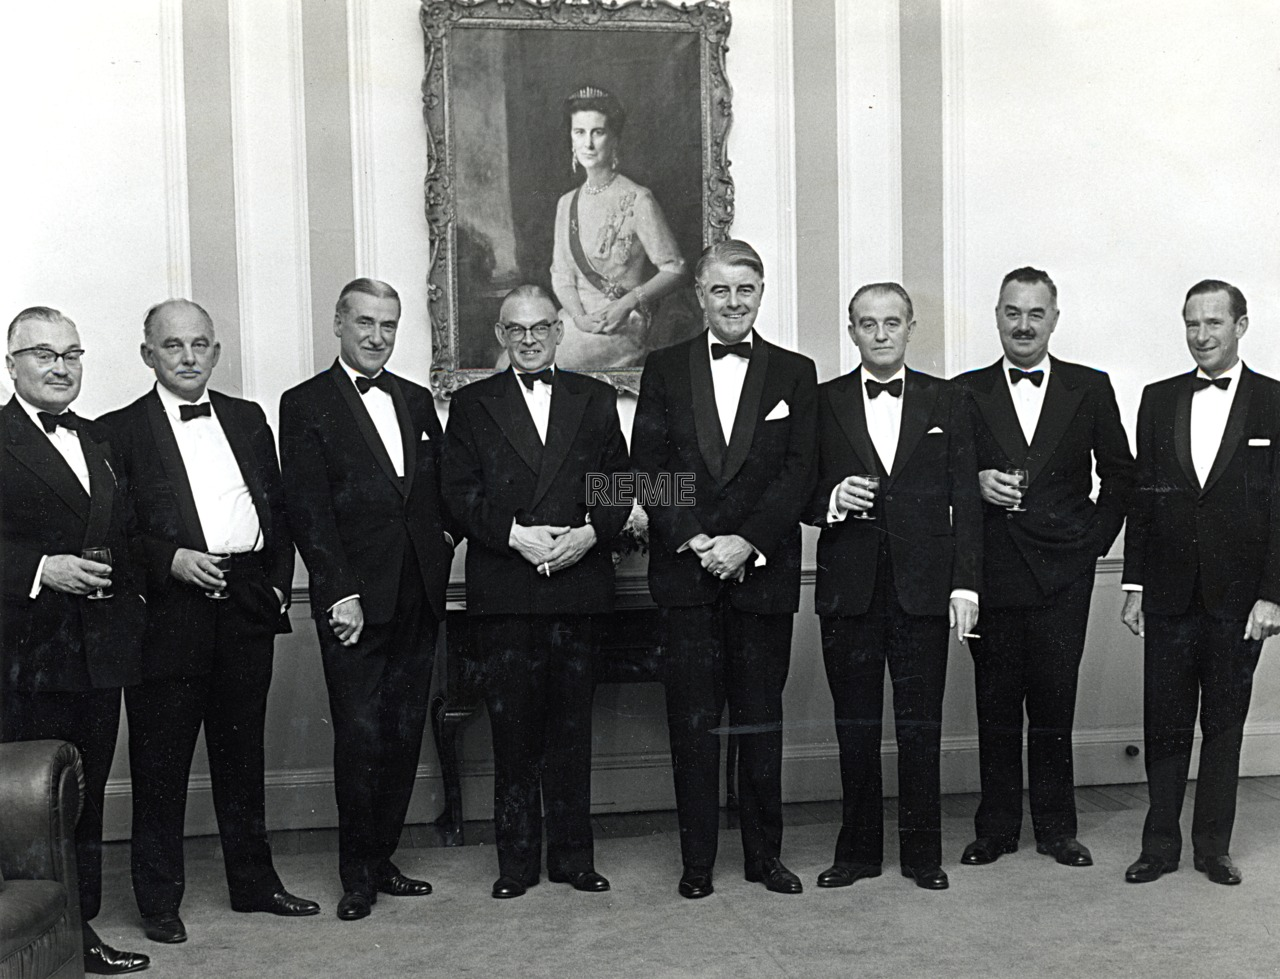 30 year reunion of the 17th Ordnance Mechanical Engineer (OME) Course, November 1968